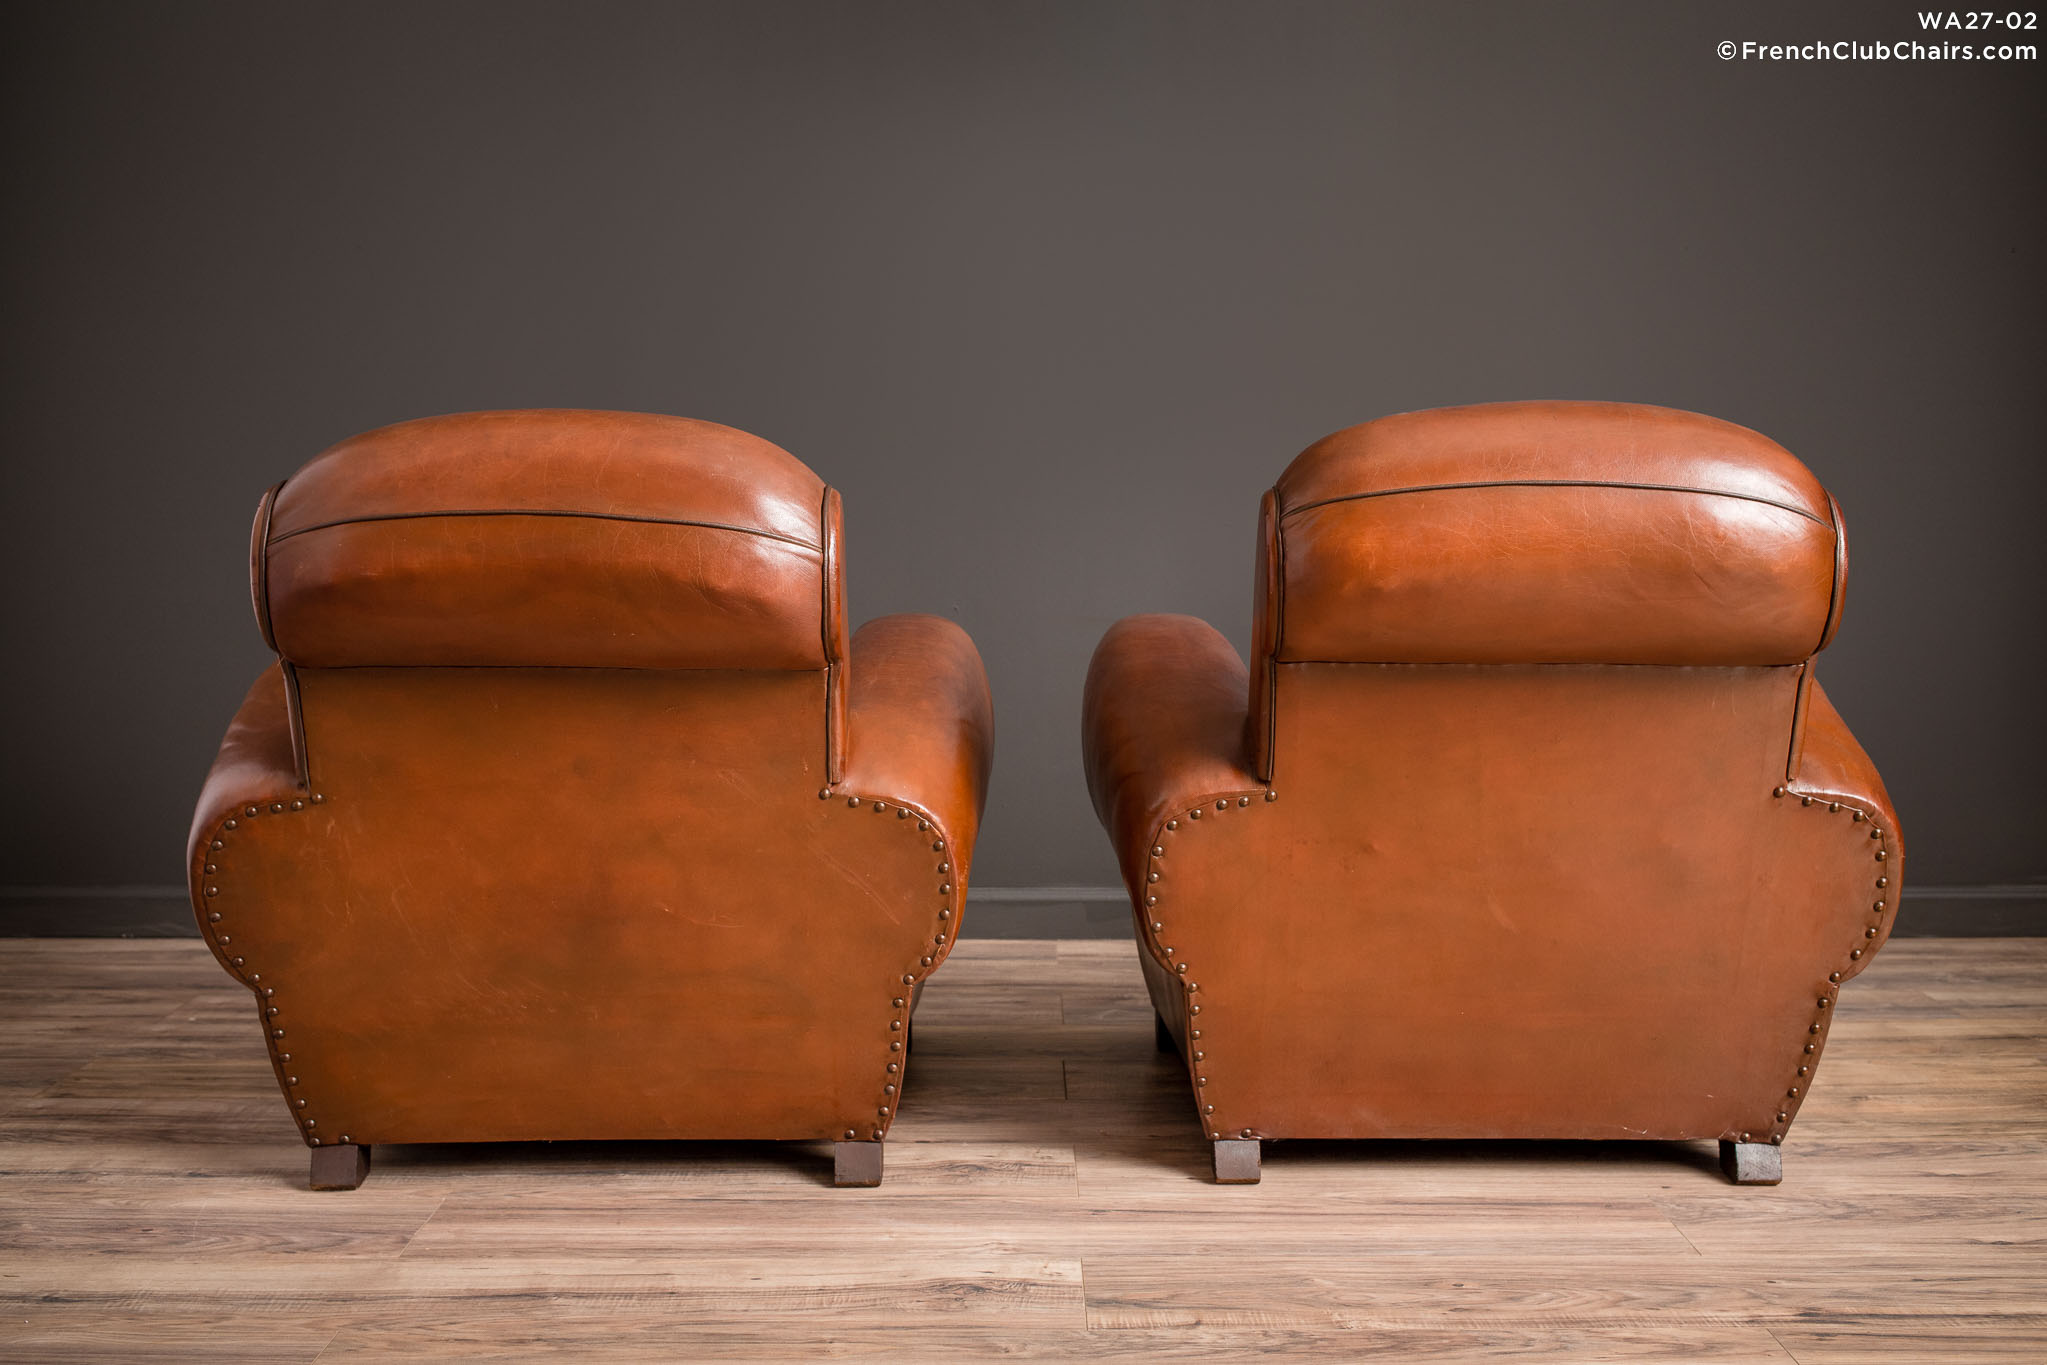 WA_27-02_Classic_Rollback_Cognac_Pair_R_2BK-v01-williams-antiks-leather-french-club-chair-wa_fcccom